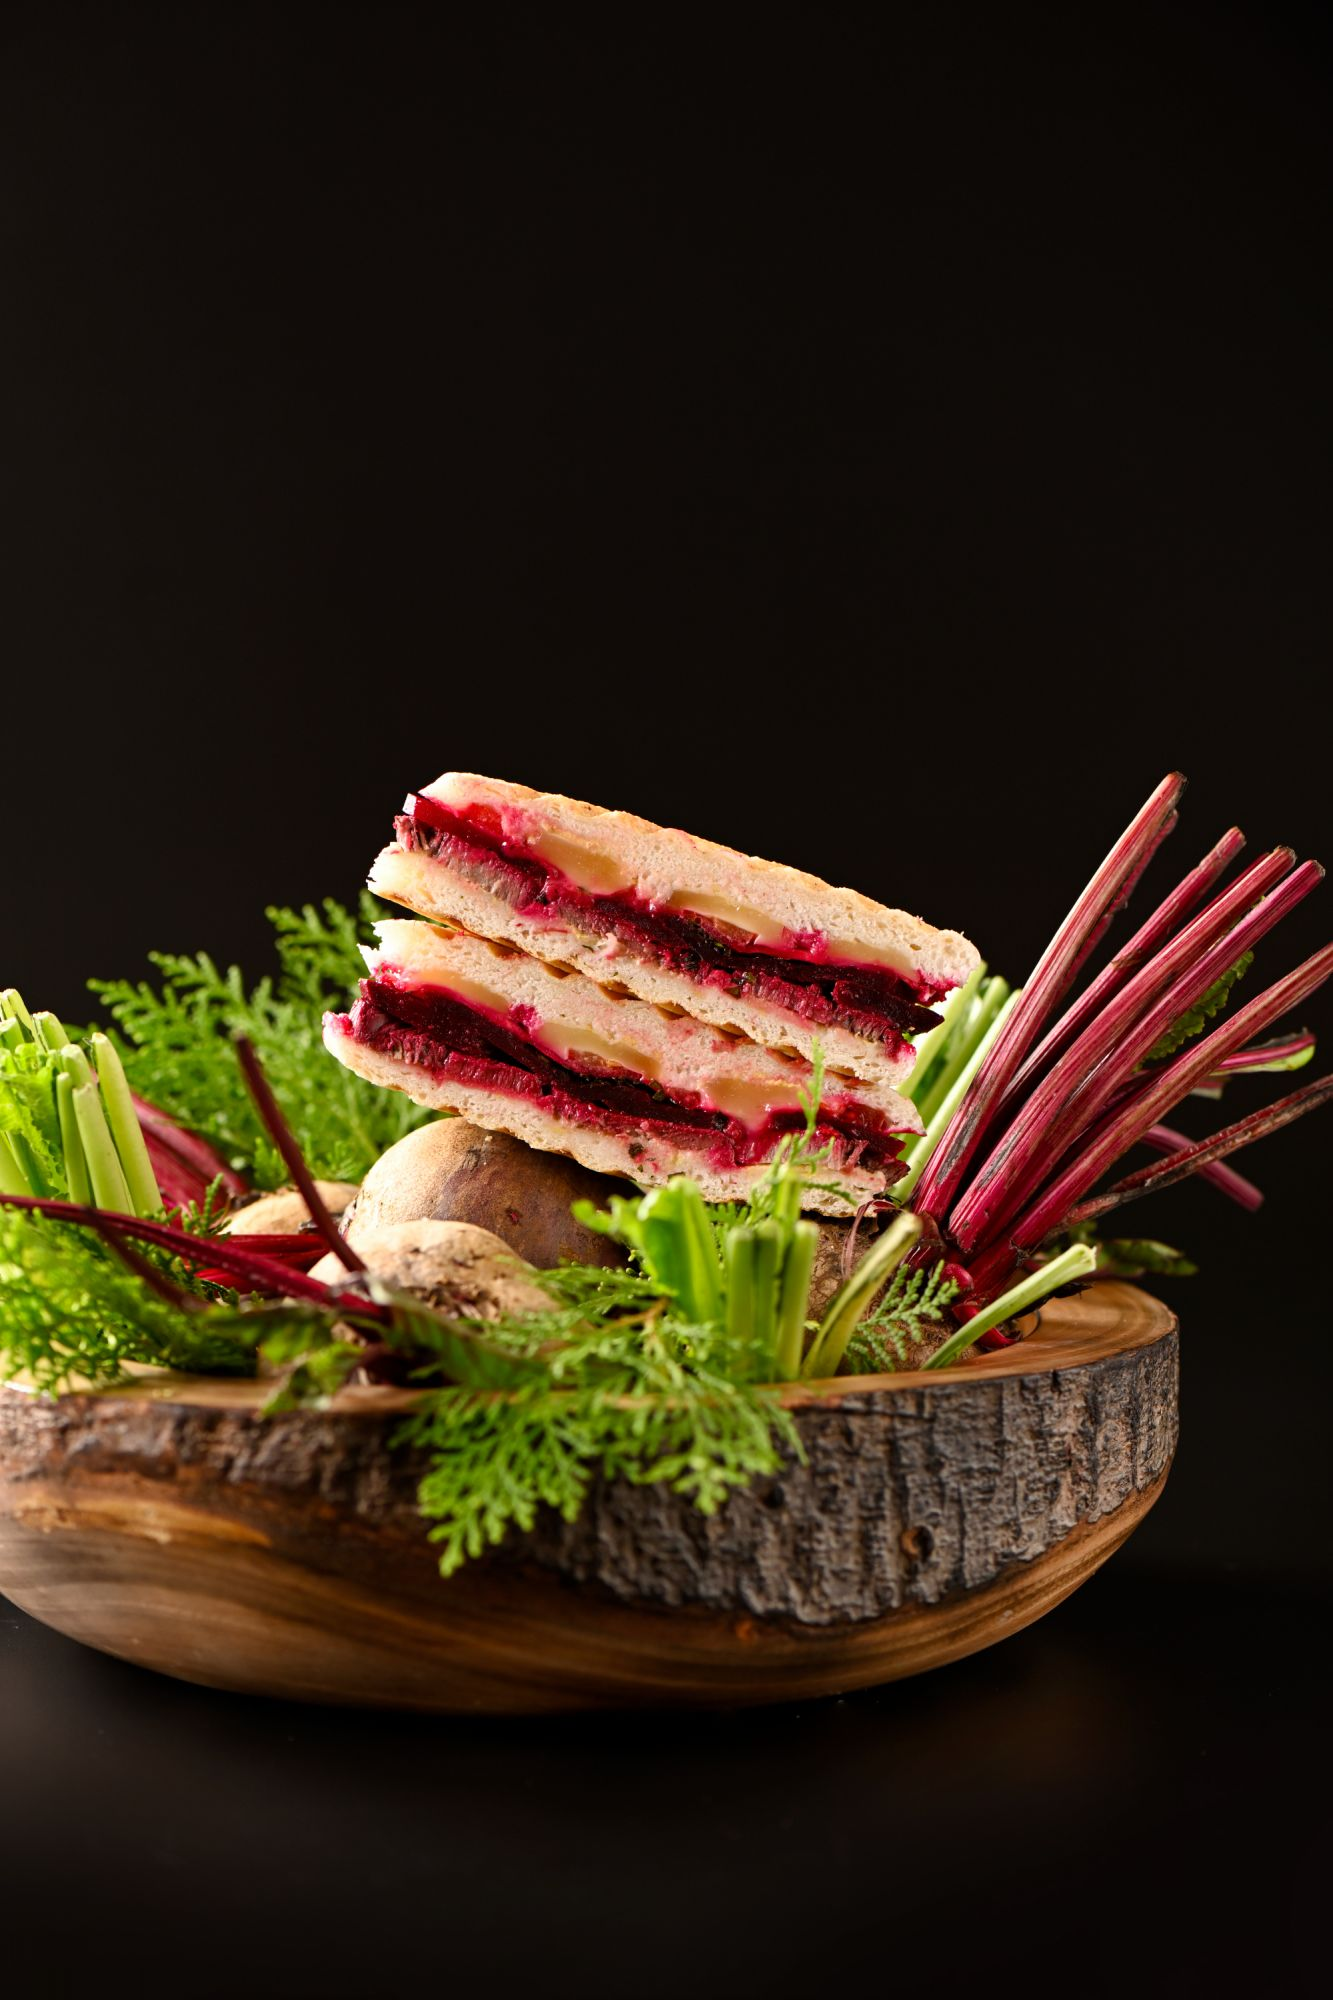 The Mandarin Oriental Is Calling It Gourmet Sandwich Season, And We're Here For It